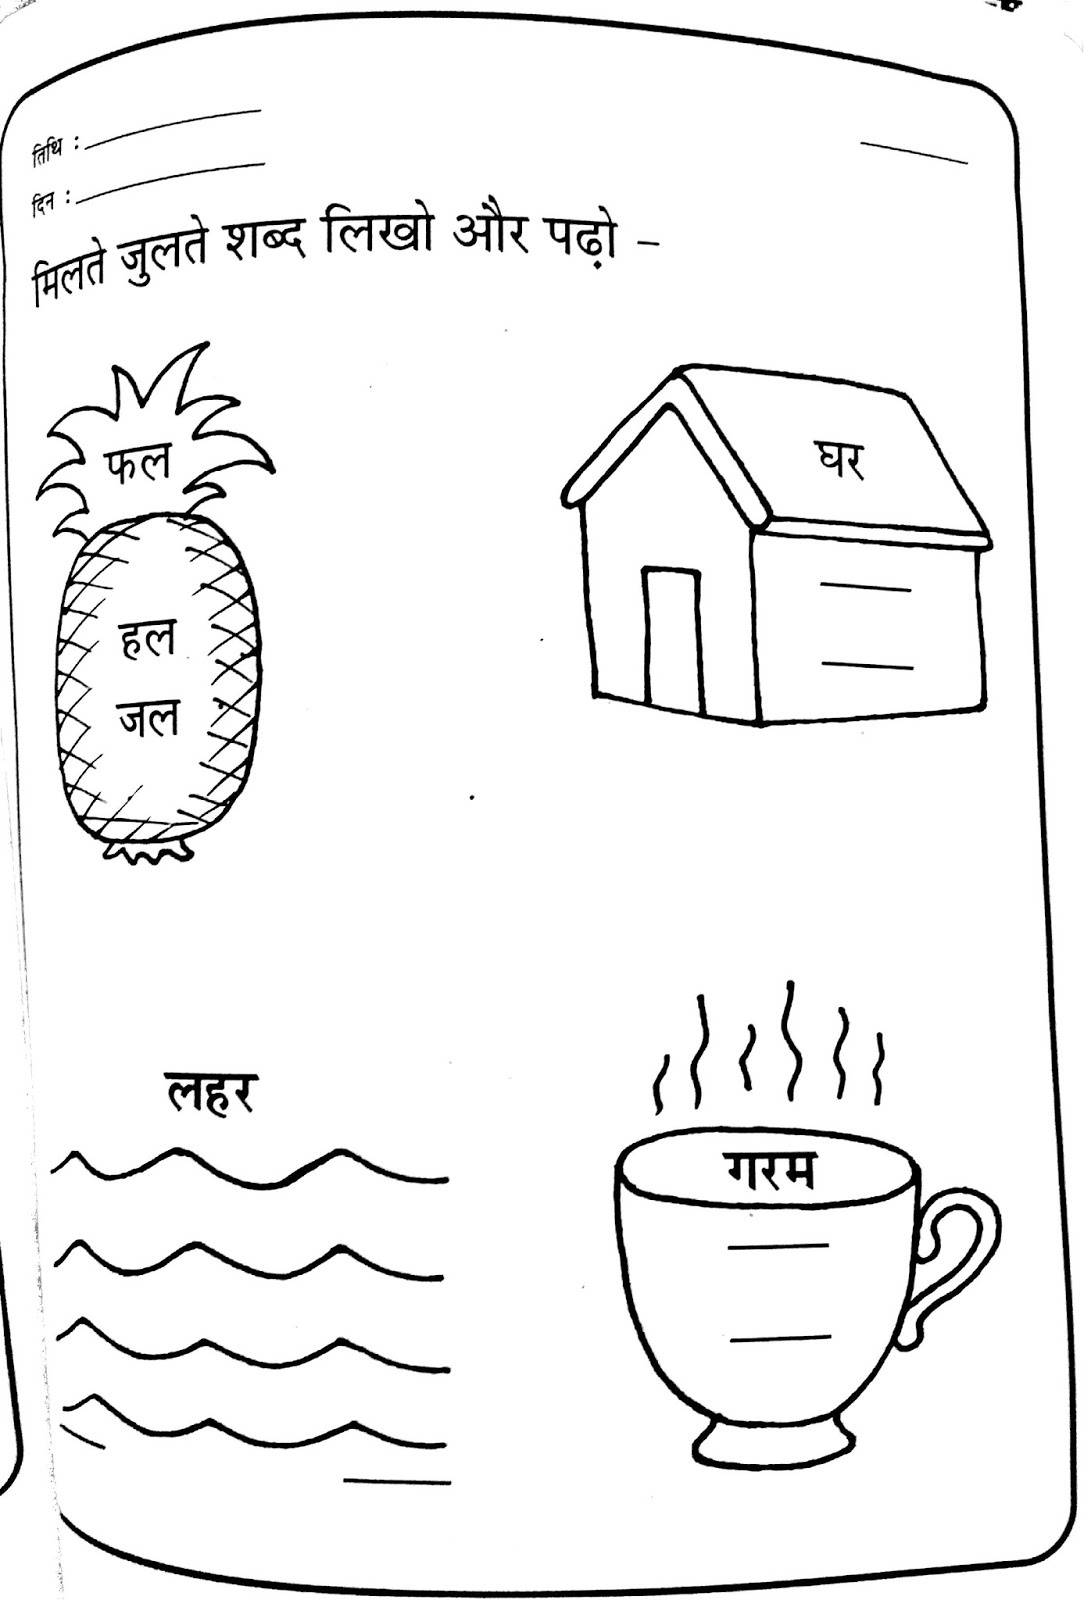 Hindi Worksheets Image By Monikayadav